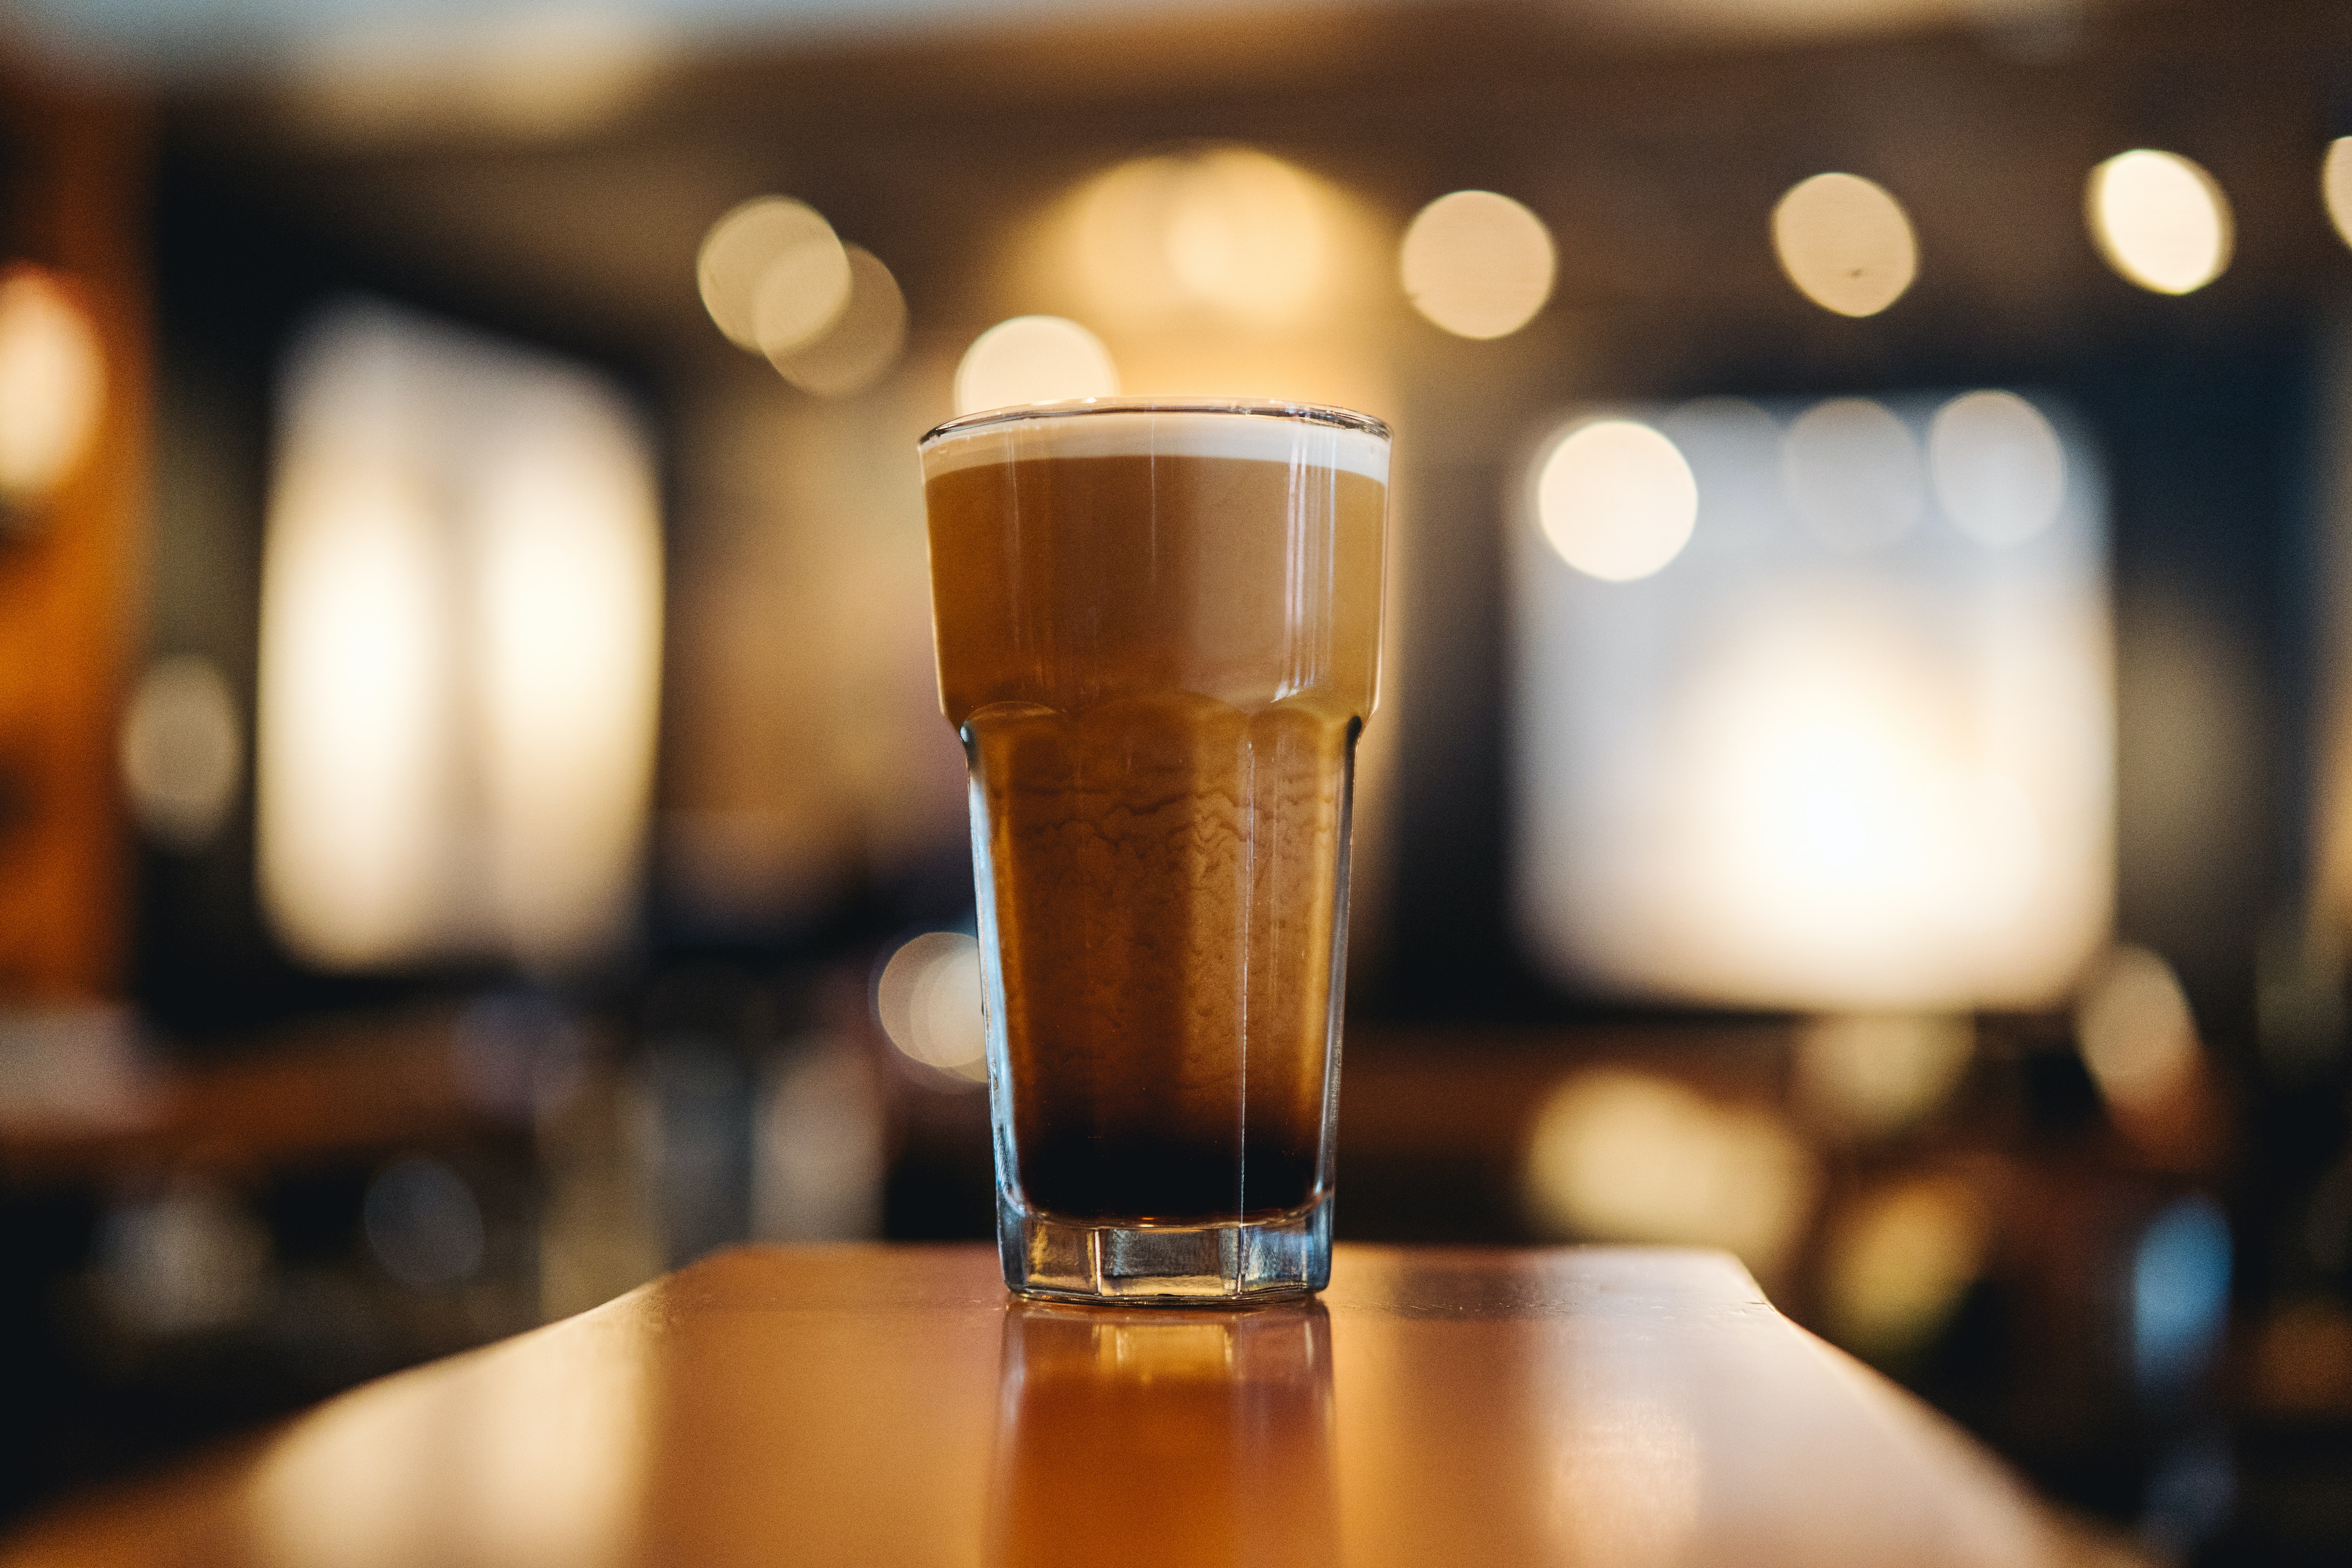 3 Starbucks Barista Hacks For Nitro Cold Brew That Will Take